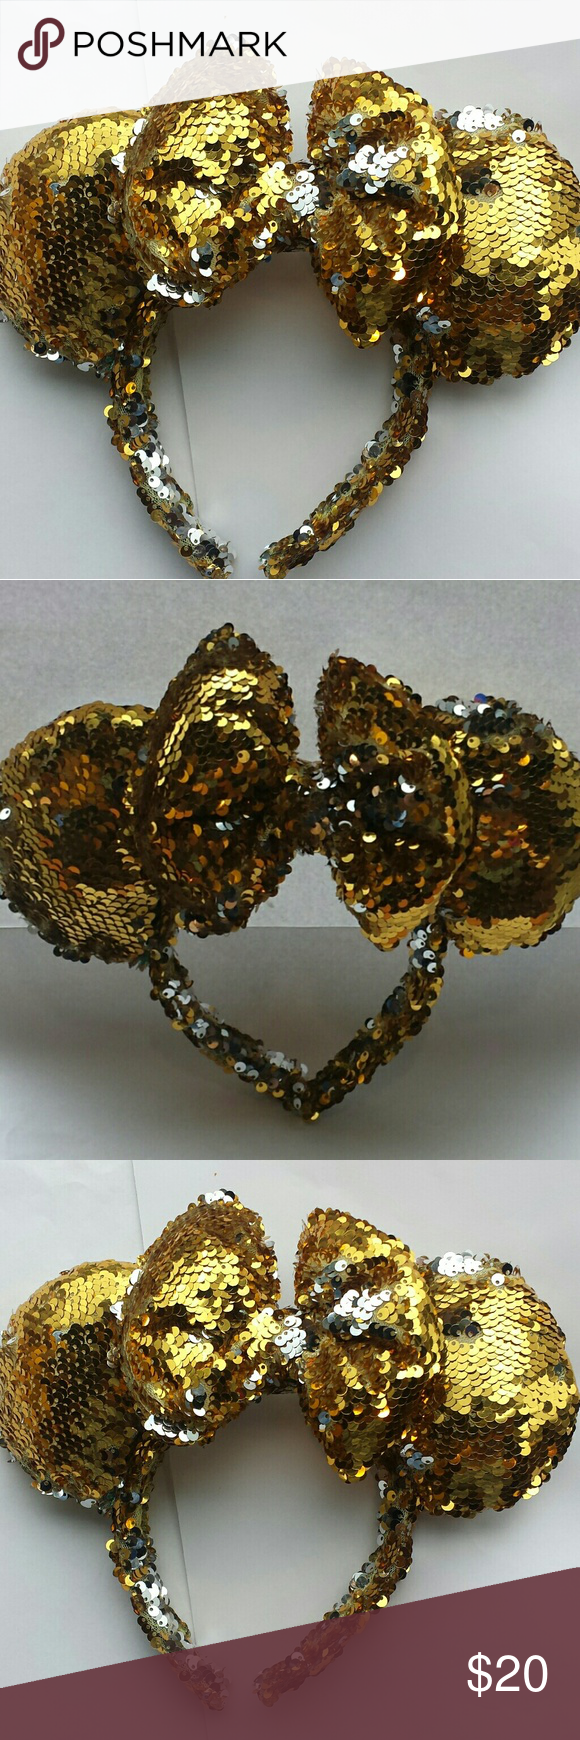 Disney Inspired Minnie Mouse Ears Gold Sequins This is a new unique  beautifully handmade Minnie Mouse fa19d130f8c9